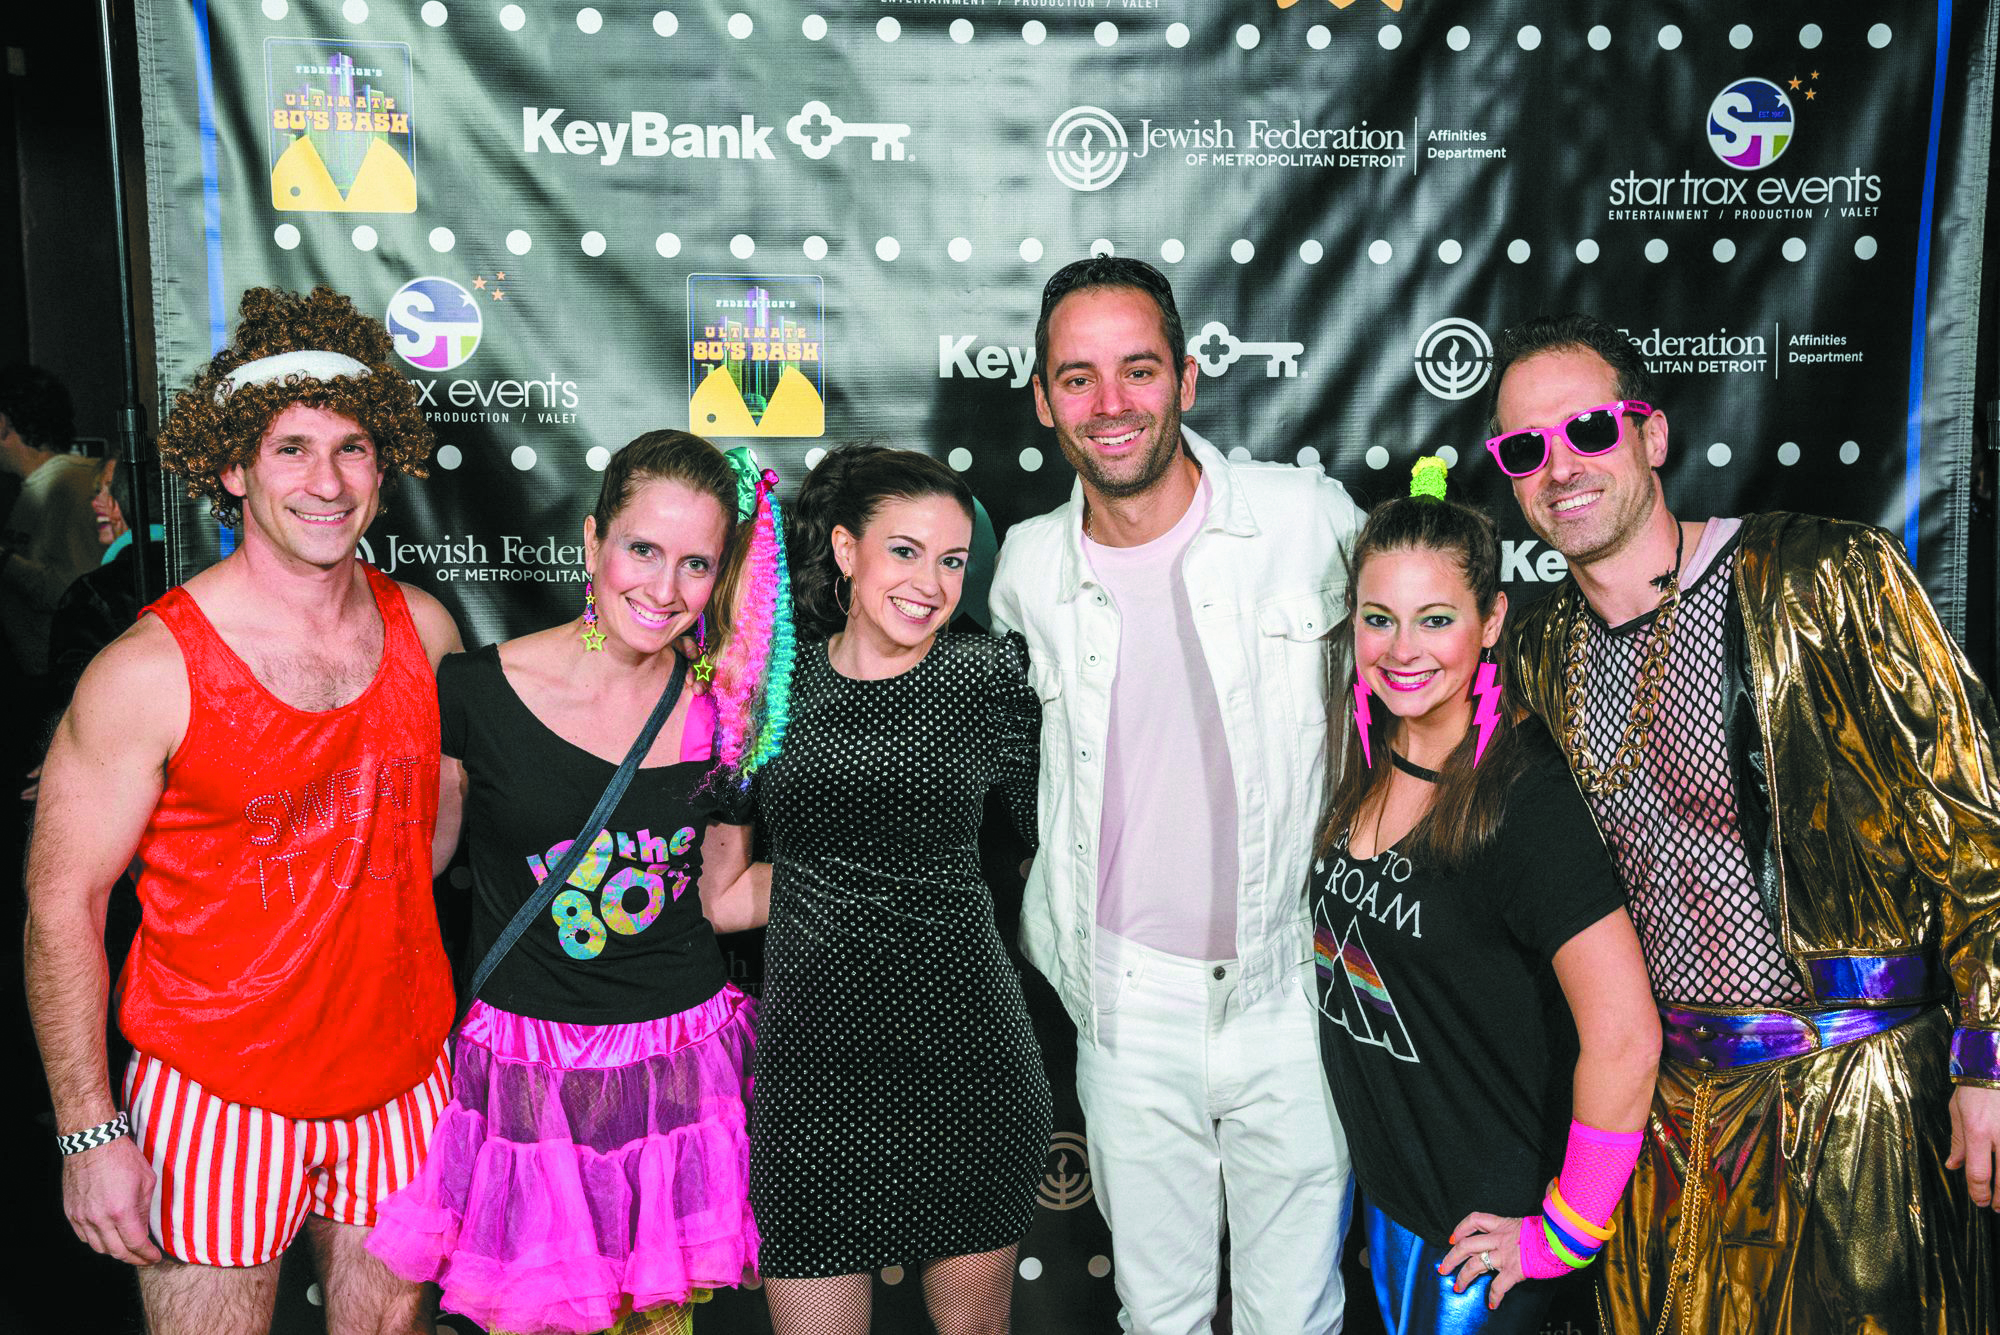 Federation staffers at last year's 1980s party.